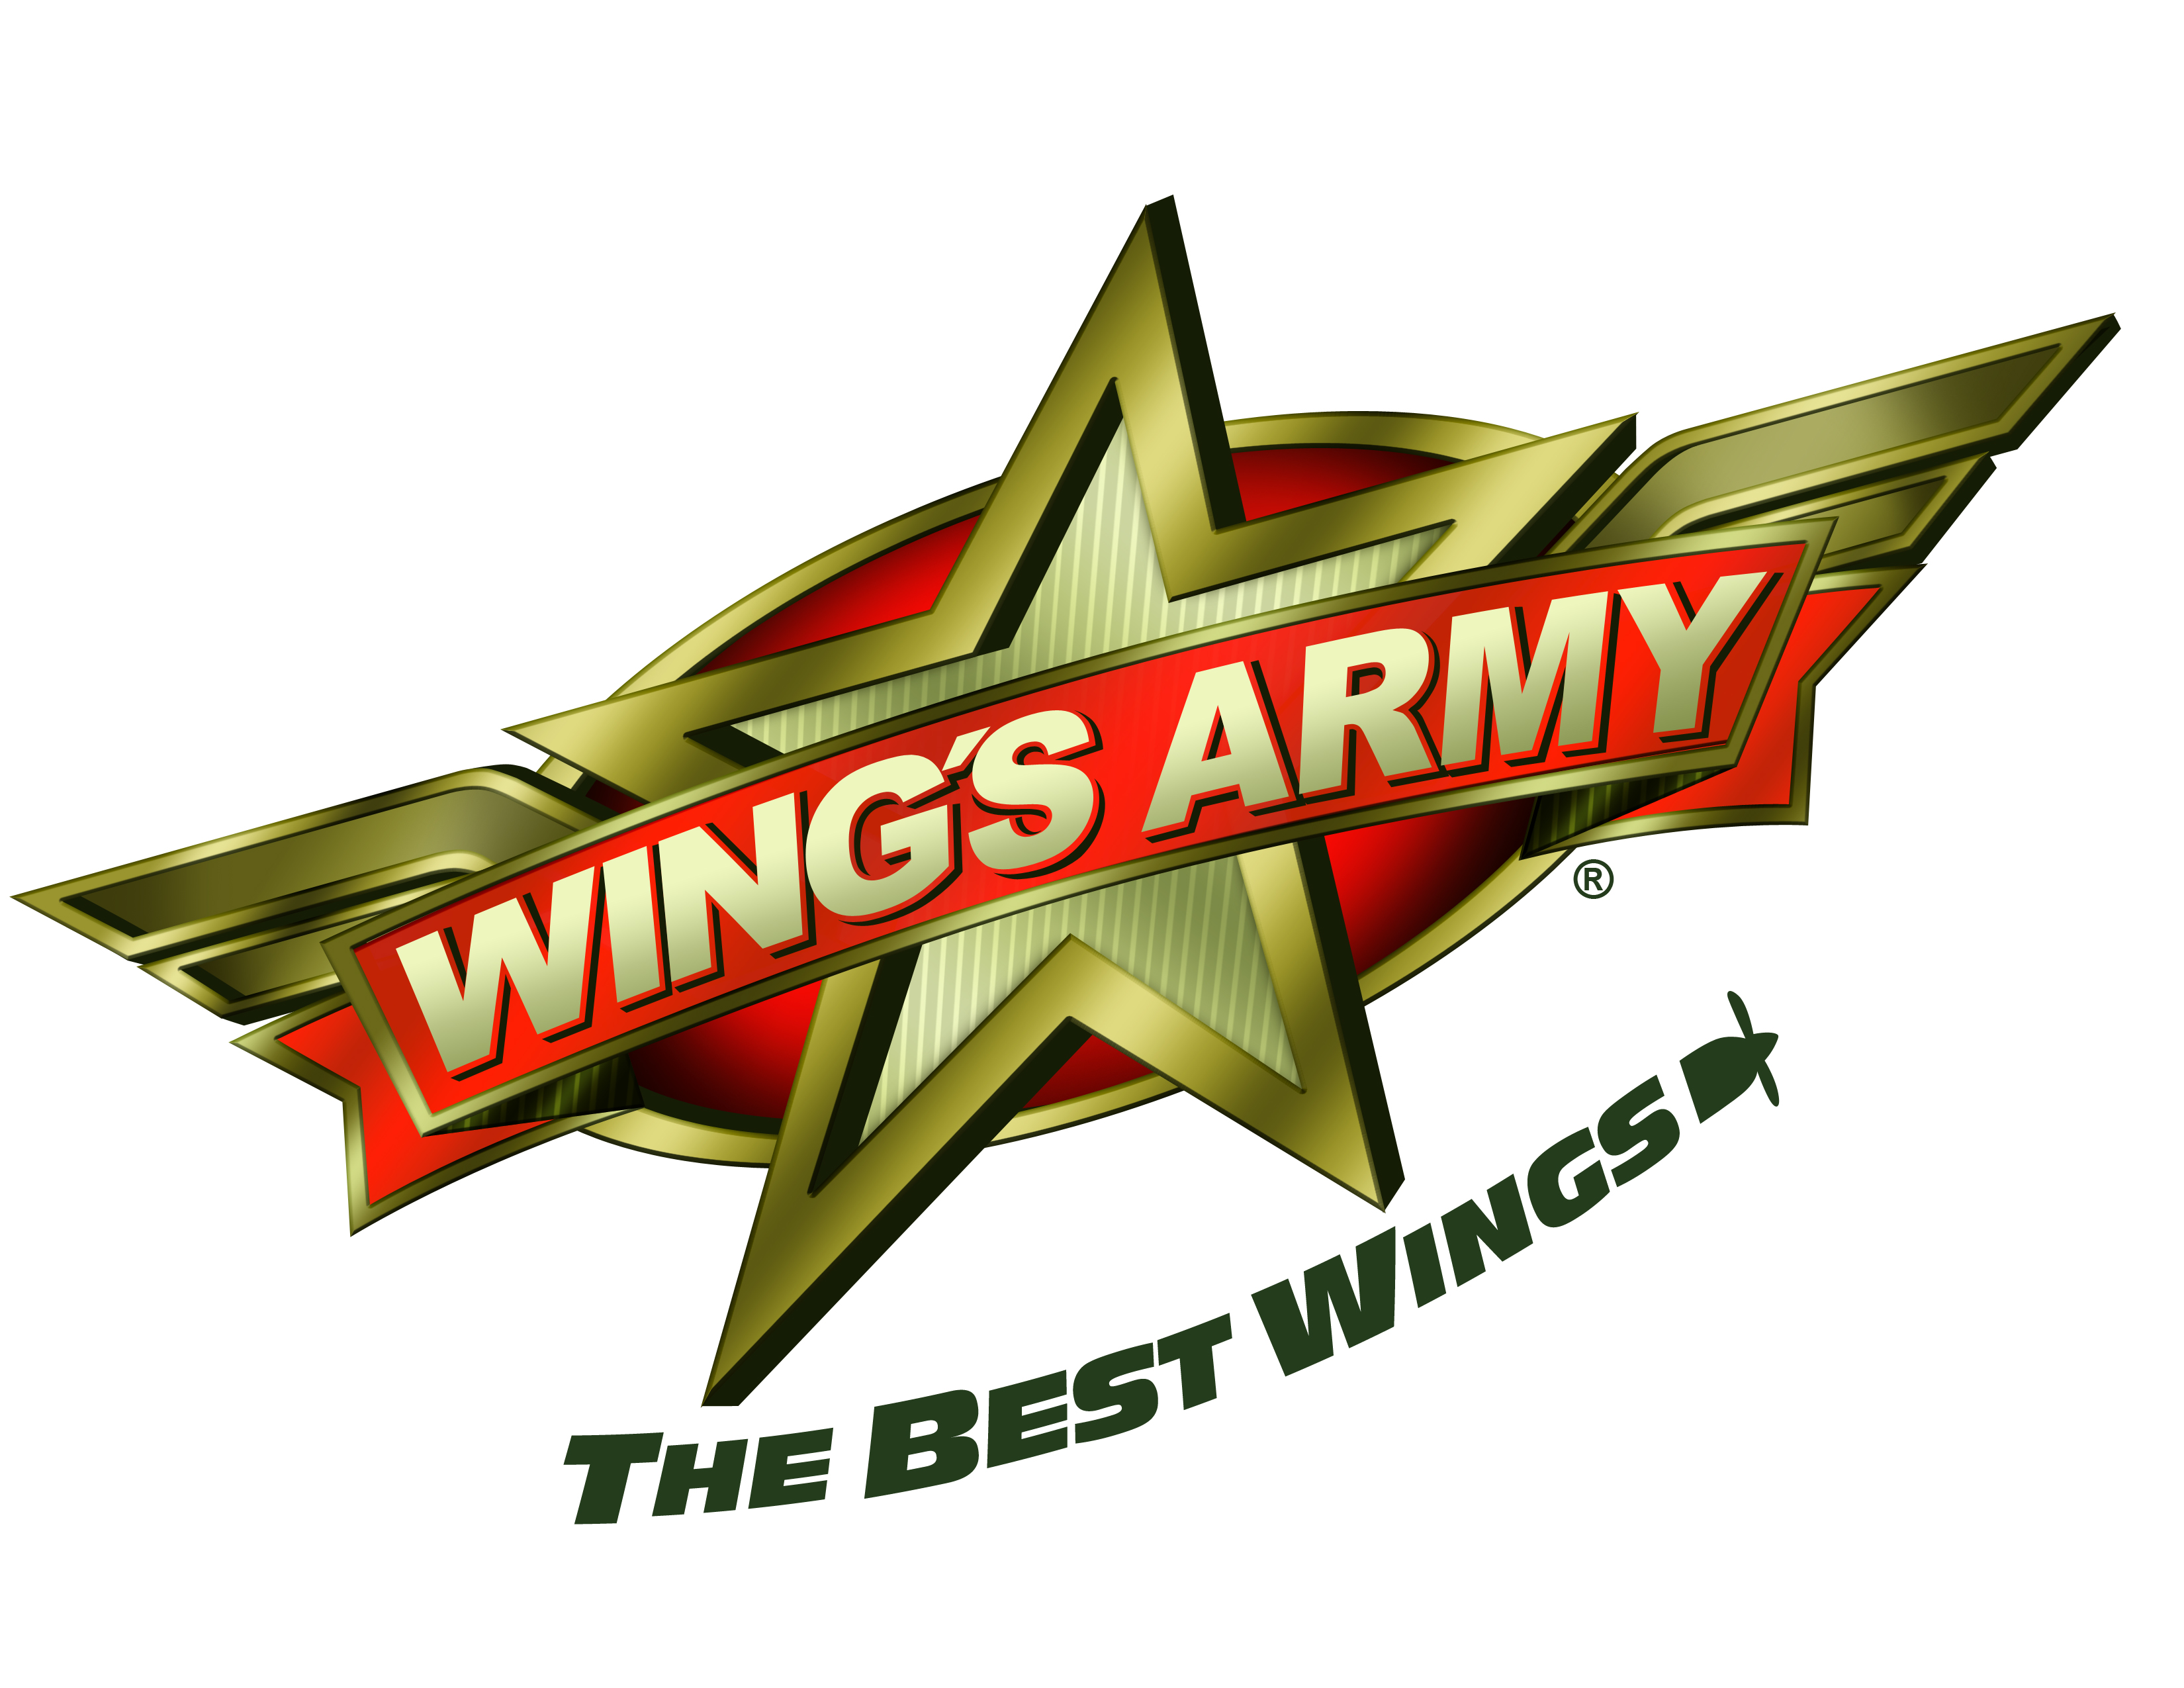 Wing's Army